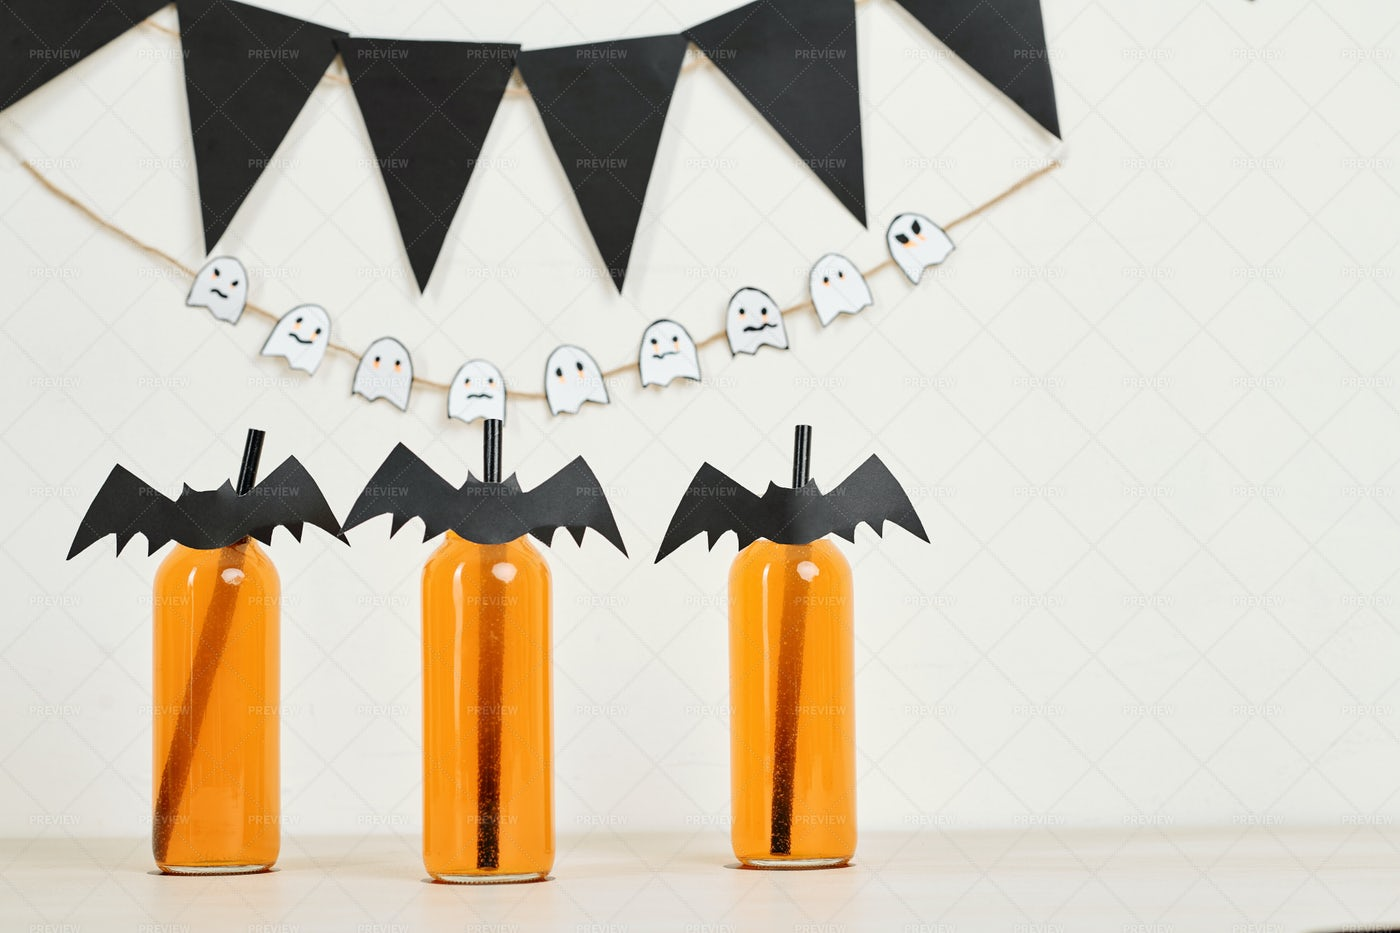 Drinks At Halloween Party: Stock Photos